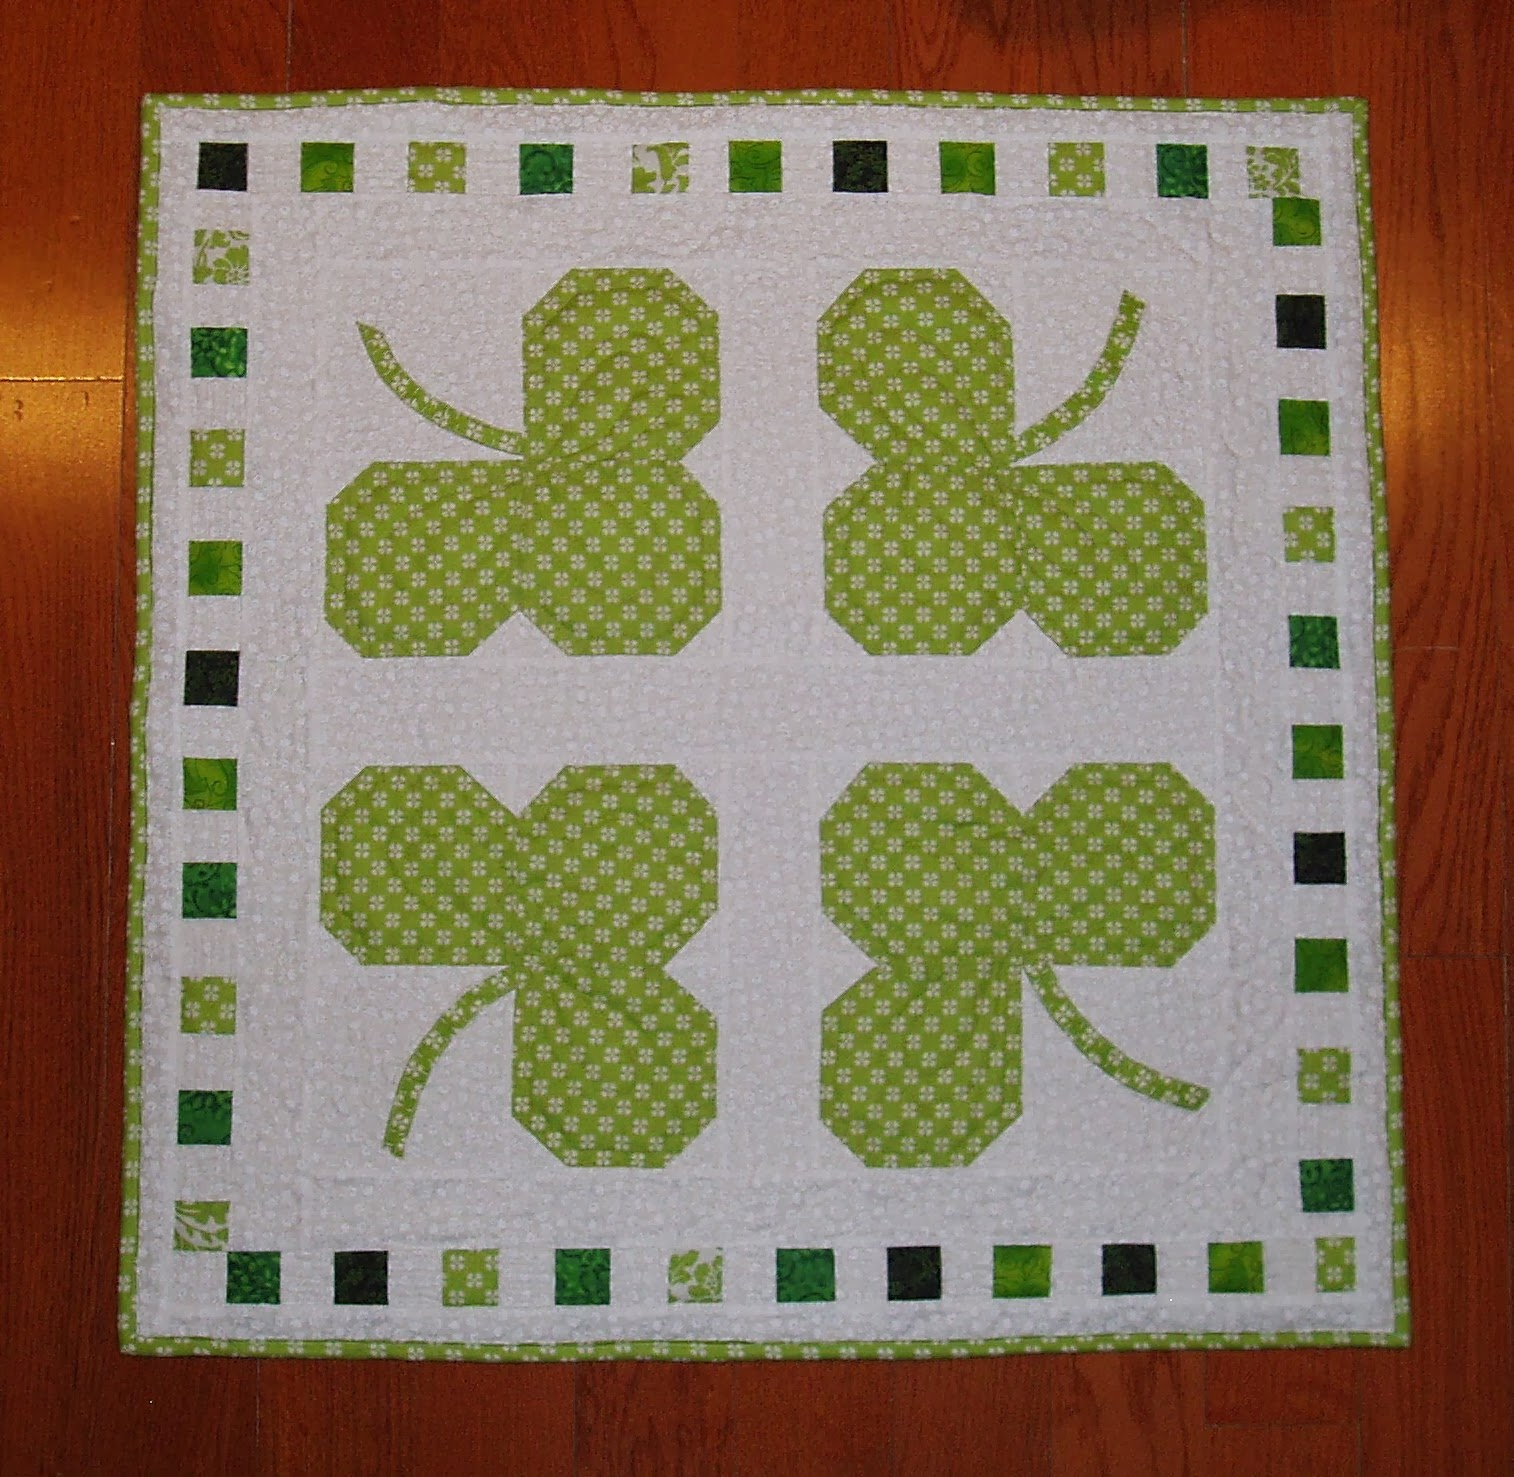 http://sunshineintheattic.blogspot.com/2014/03/quilting-shamrocks-table-topper.html